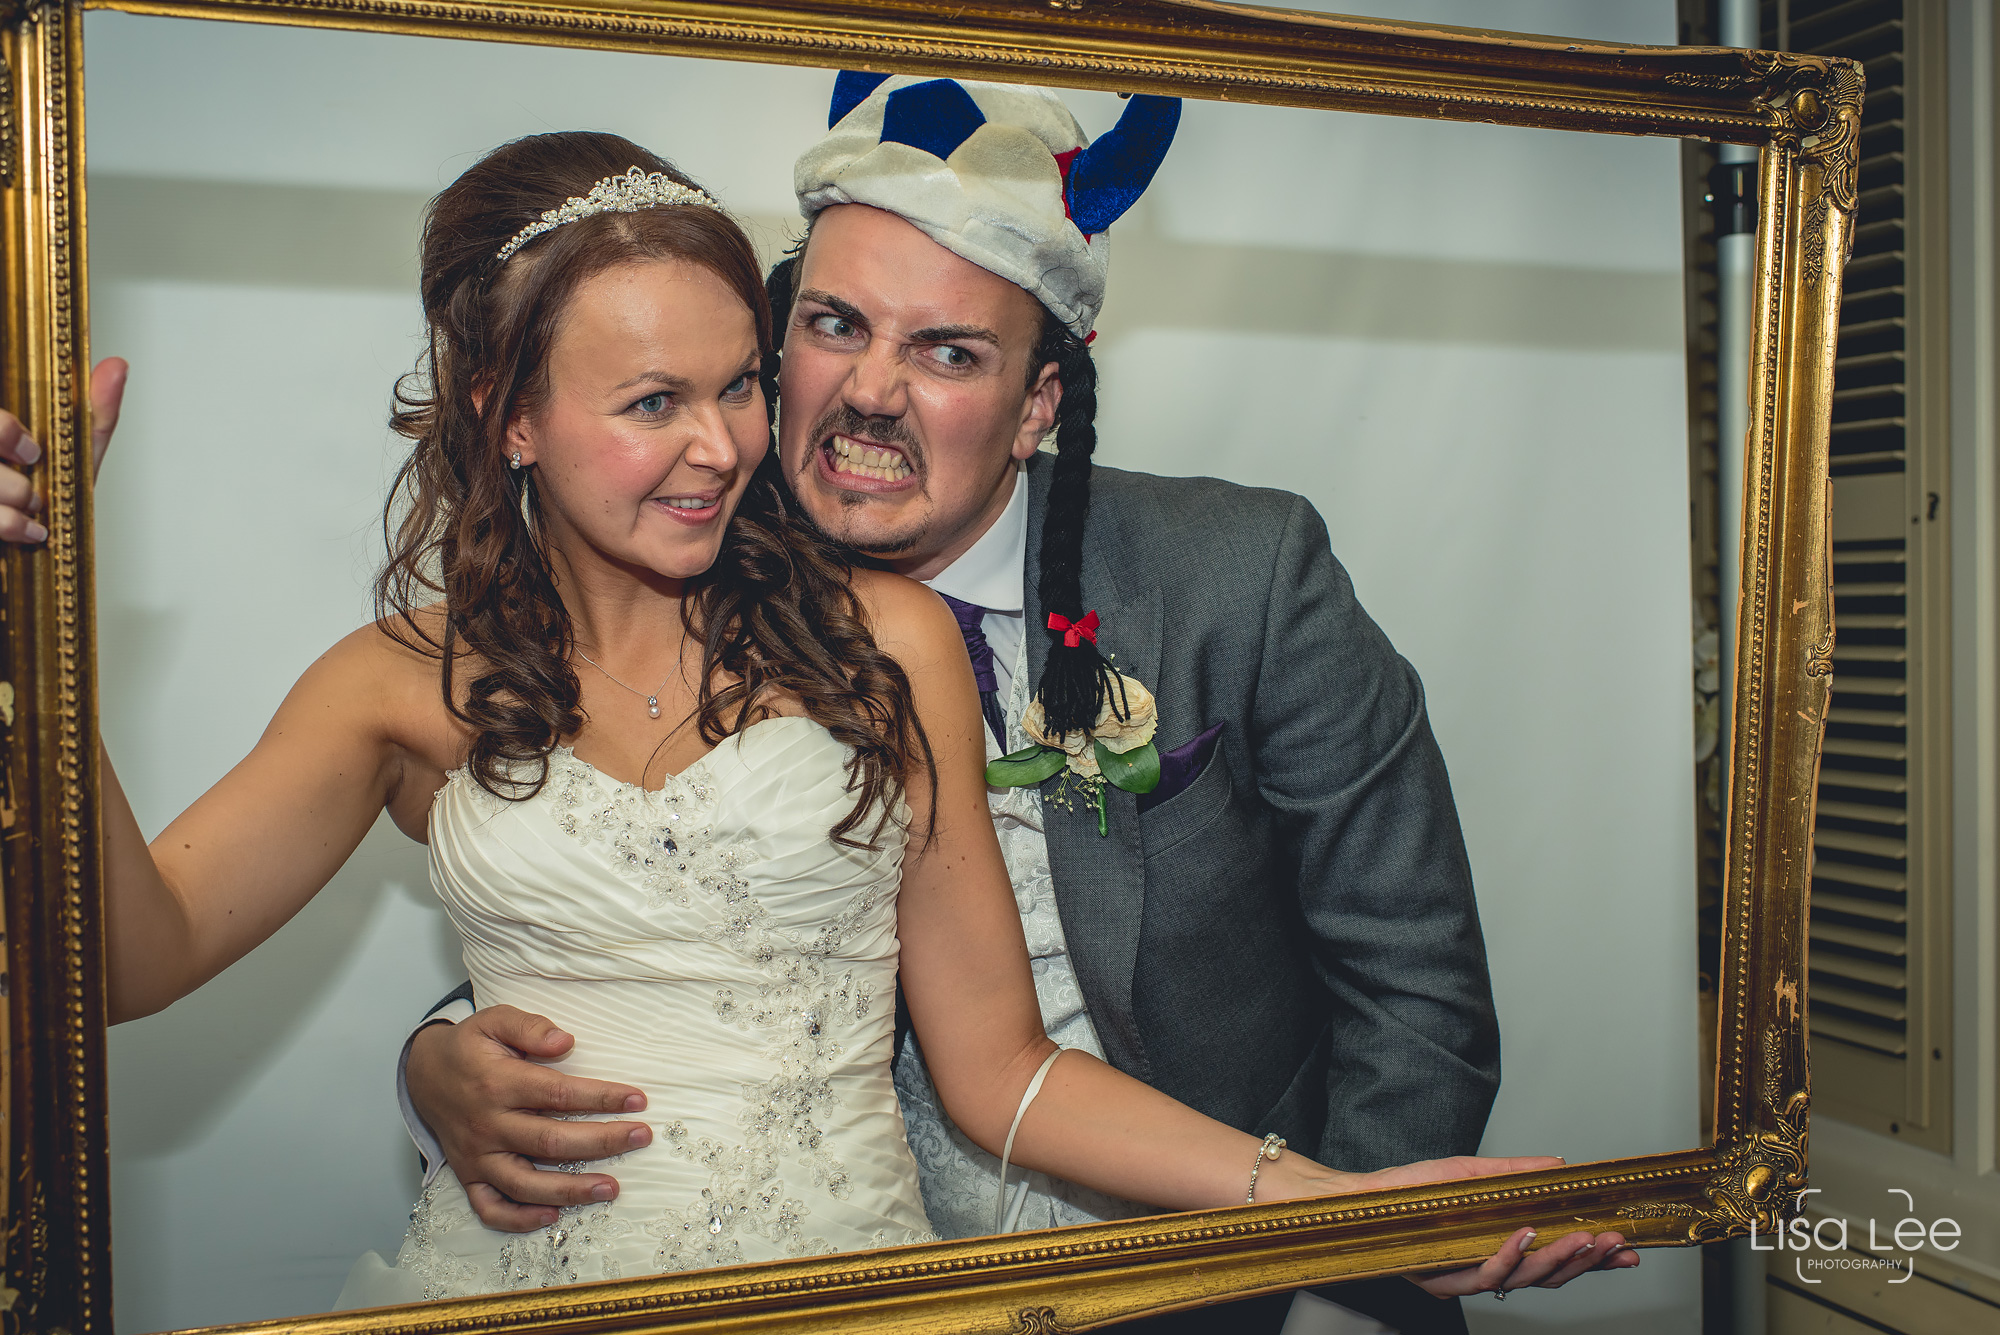 Lord-Bute-Hotel-Lisa-Lee-Documentary-Wedding-Photography-party-17.jpg